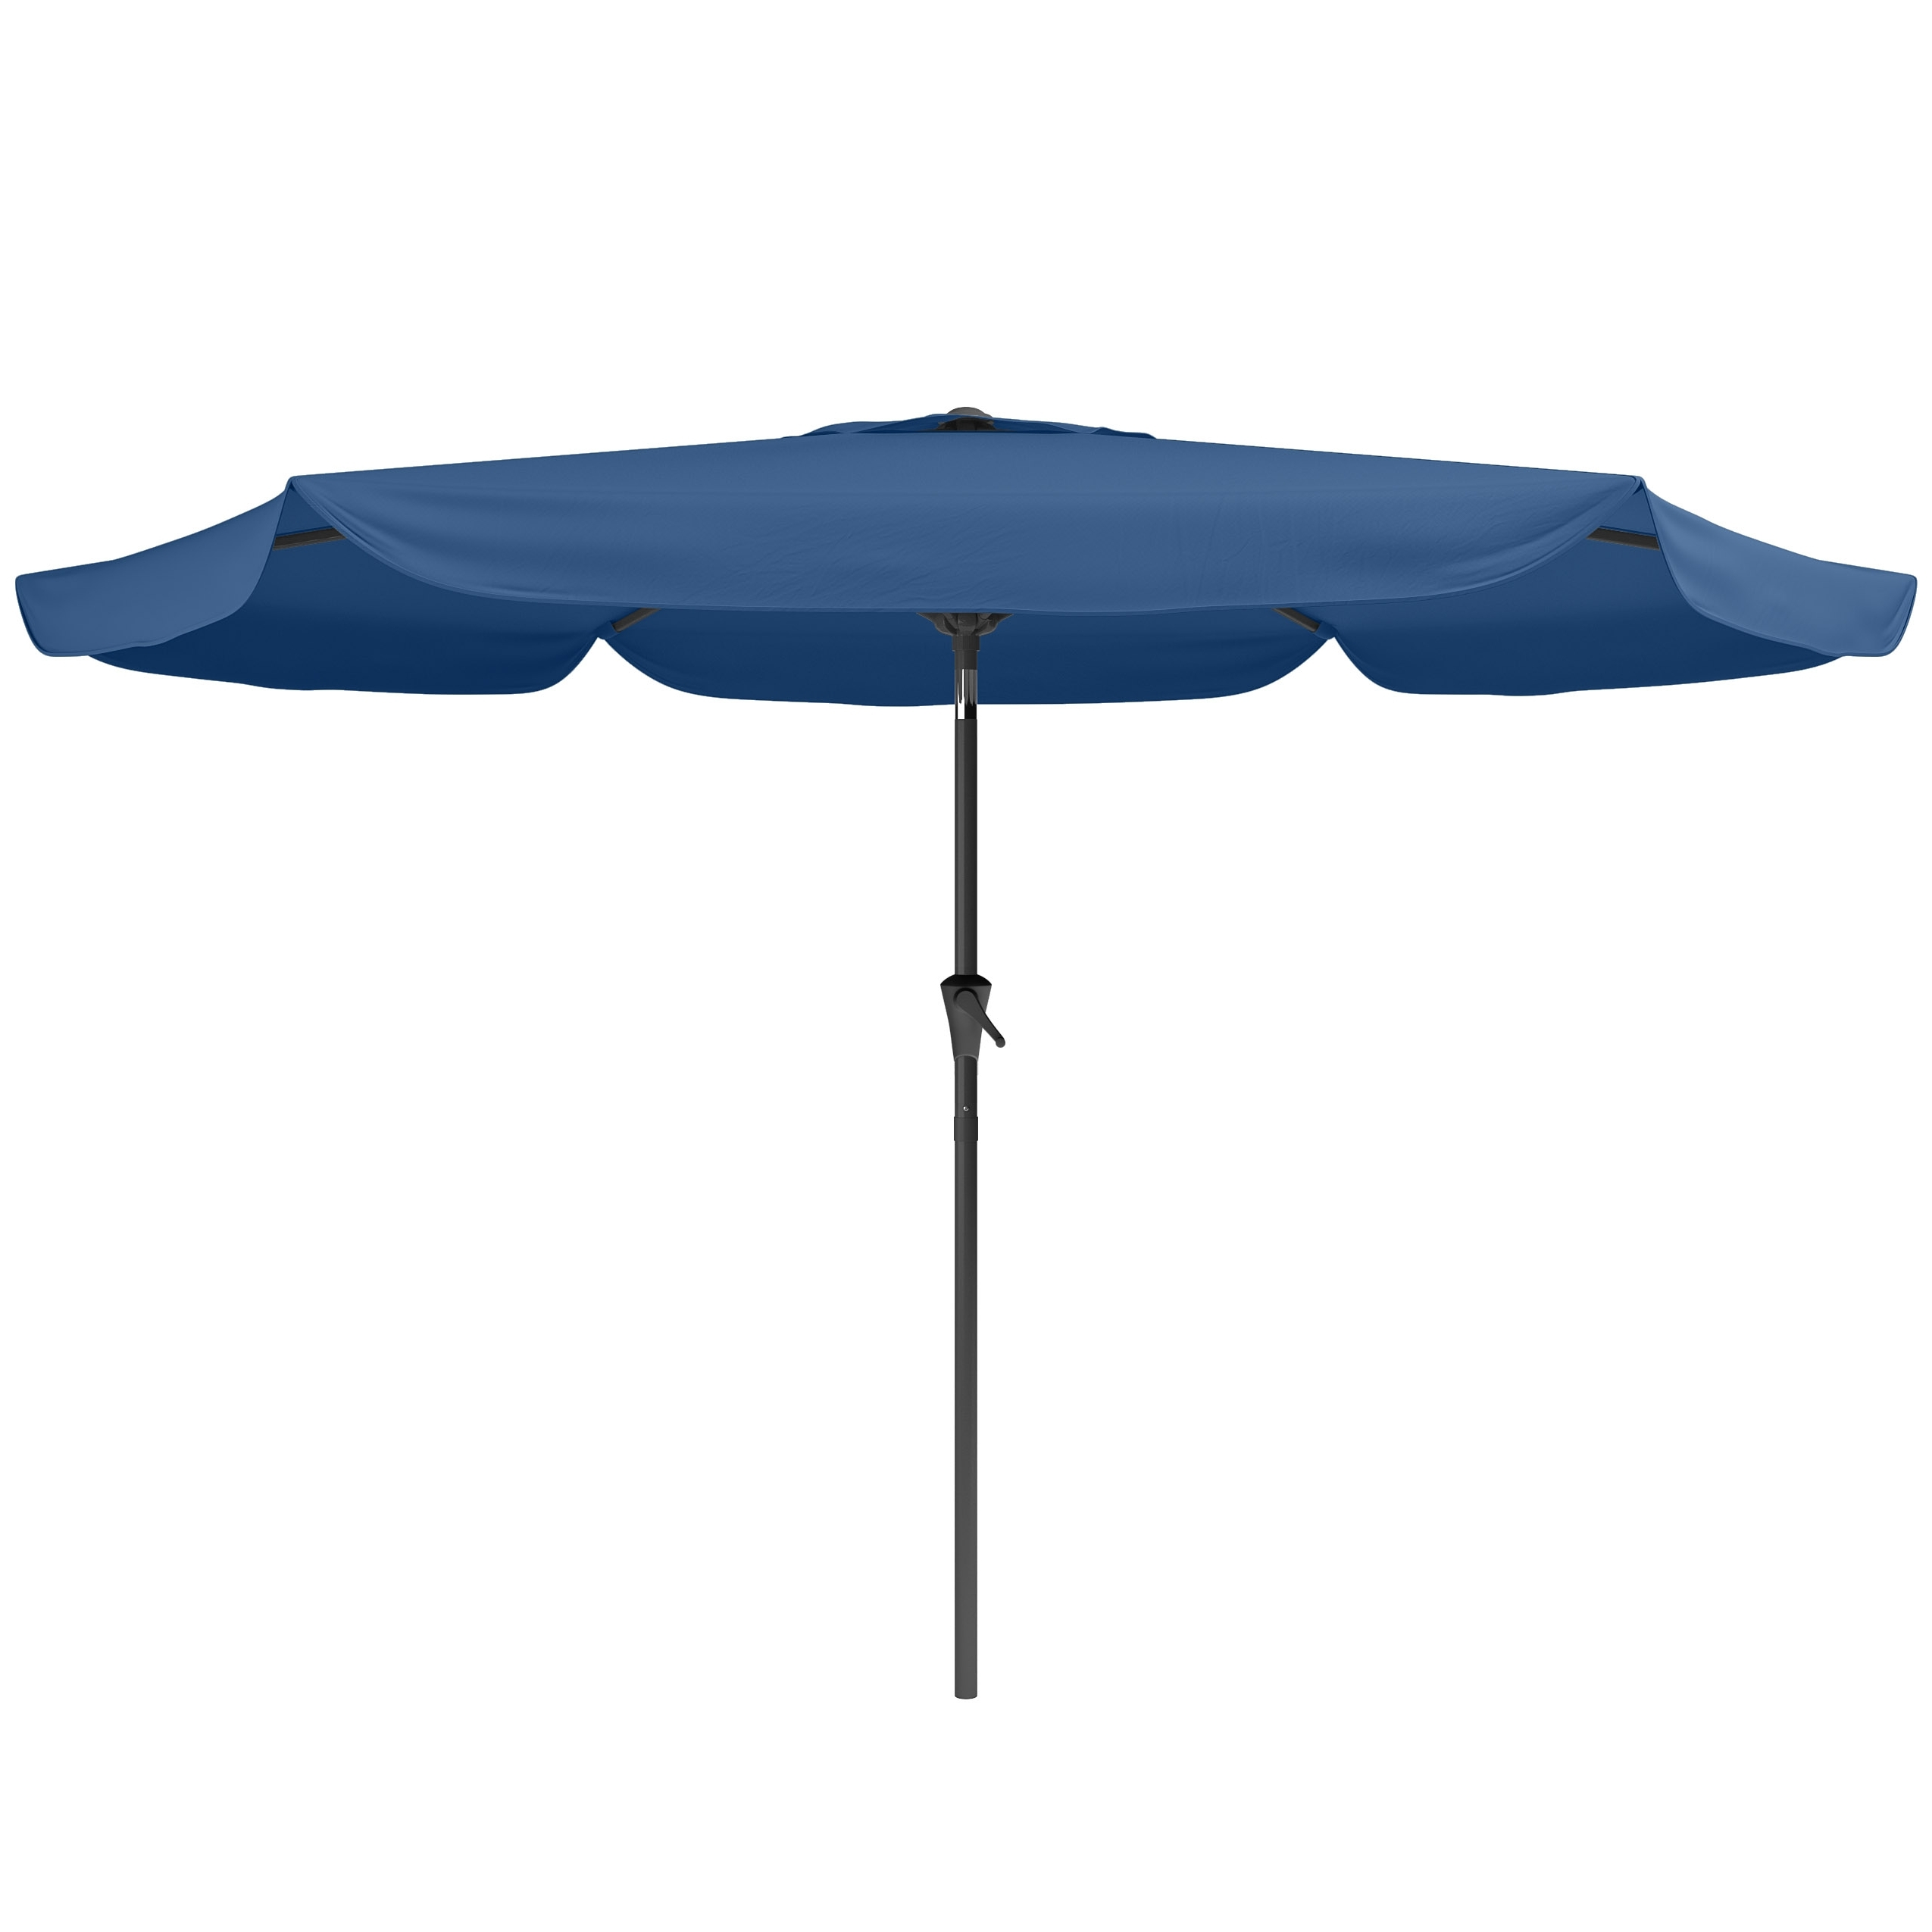 Tilting Patio Umbrellas Intended For Well Liked Tilting Patio Umbrella In Cobalt Blue (View 8 of 20)